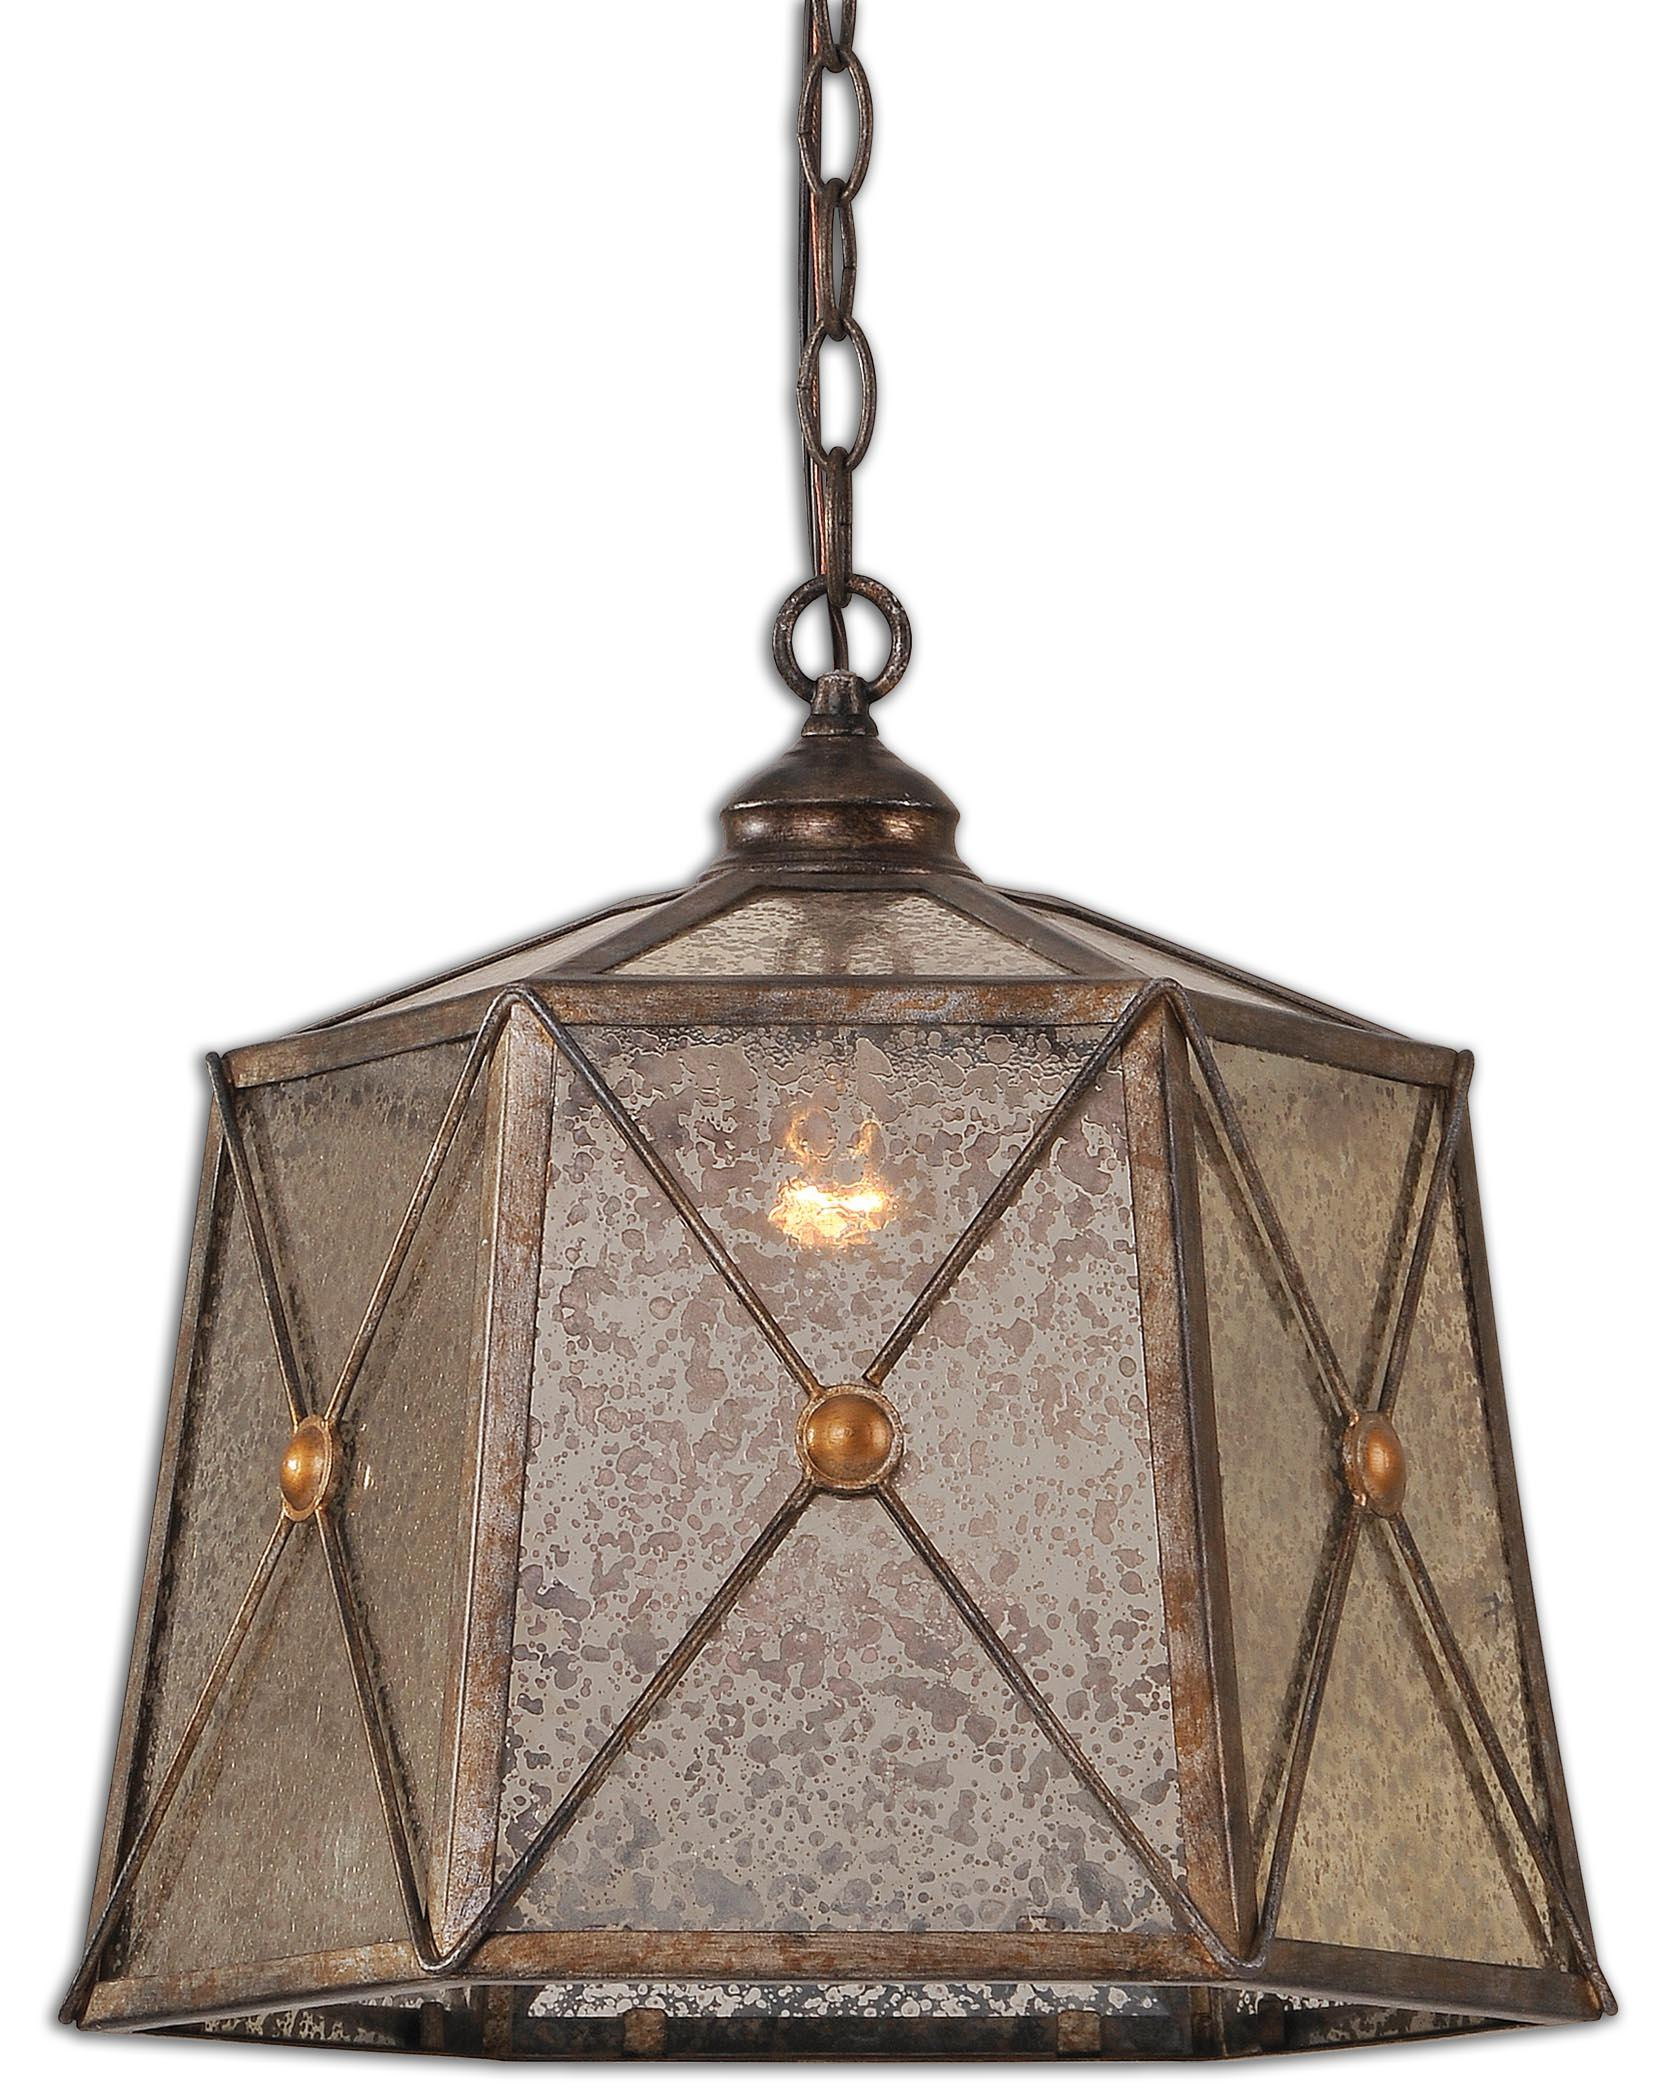 Uttermost Lighting Fixtures Basiliano 1 Light Pendant - Item Number: 21991